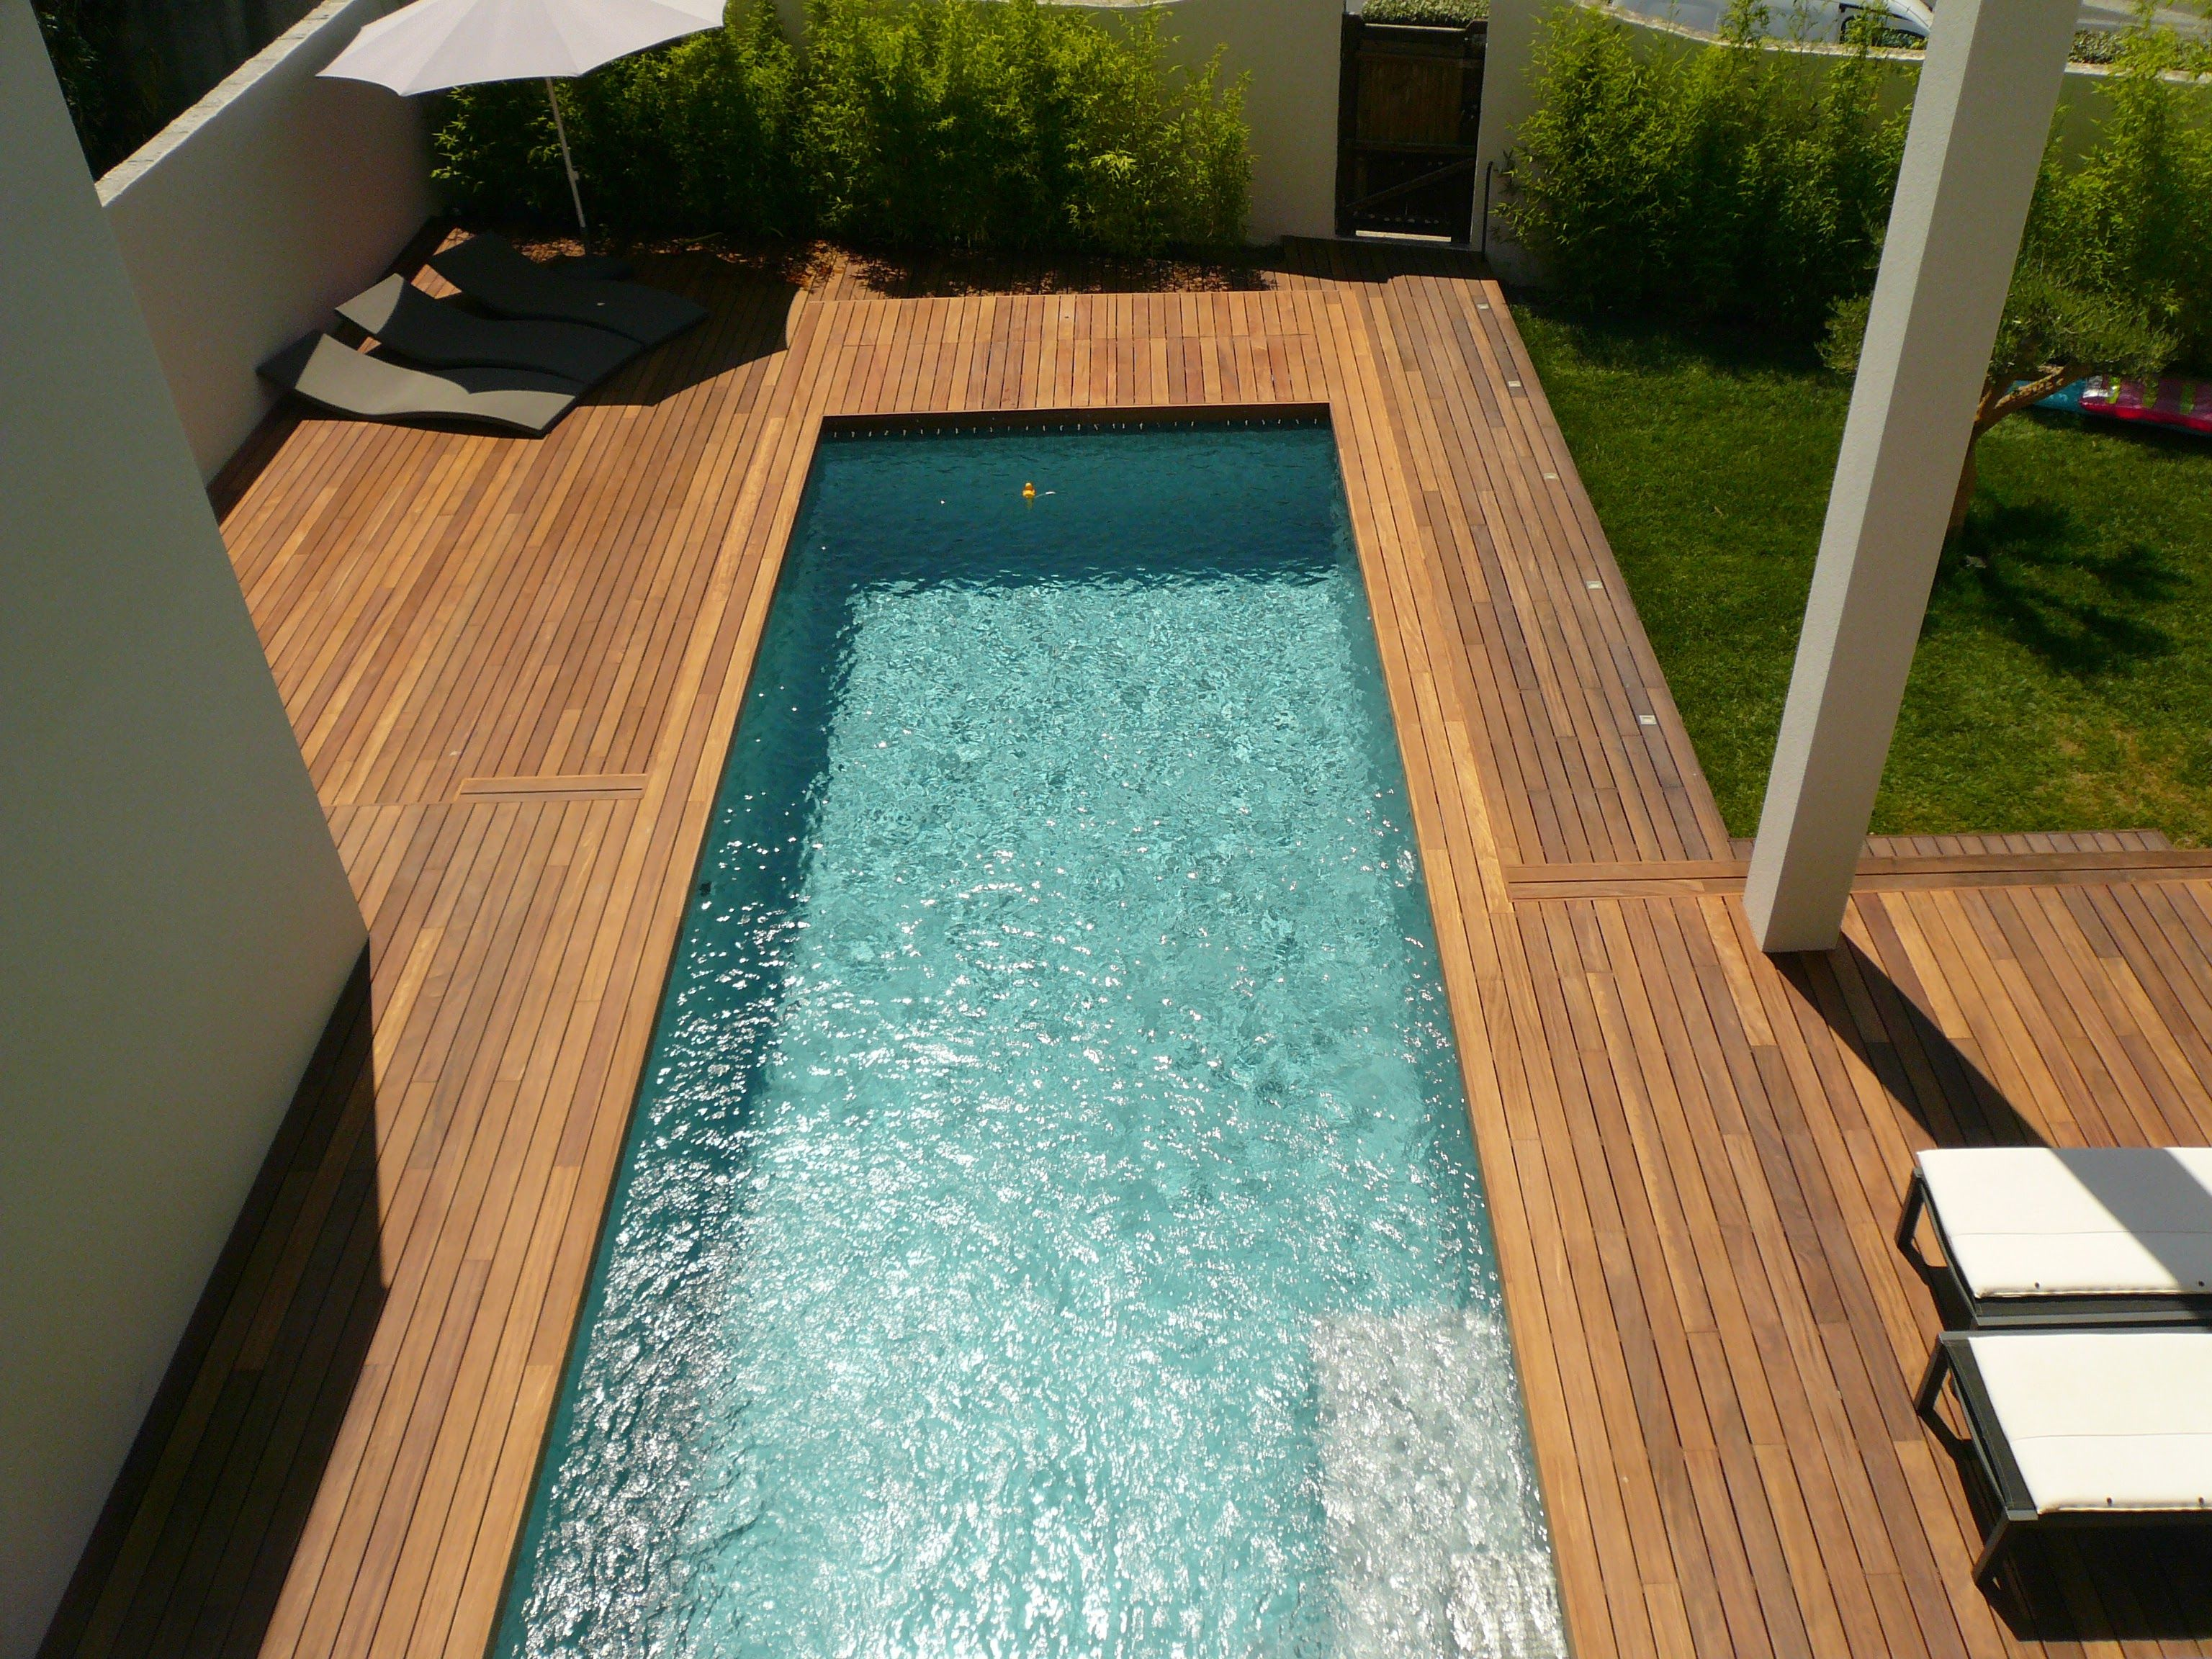 Amenagement De Terrasse De Piscine En Bois Exotique Ipe Visserie